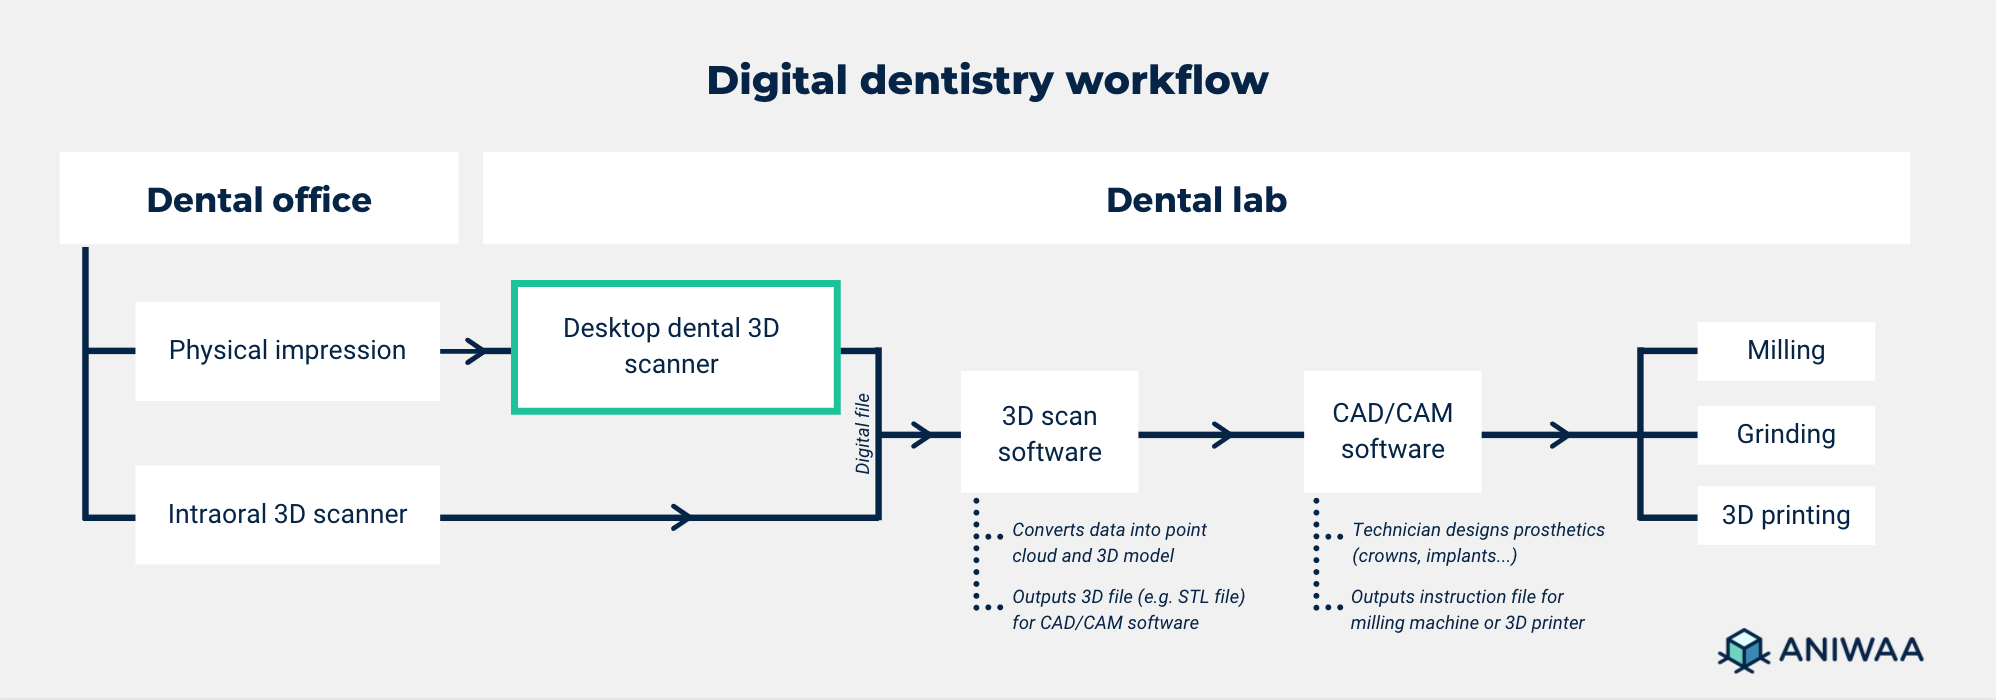 Digital dentistry workflow